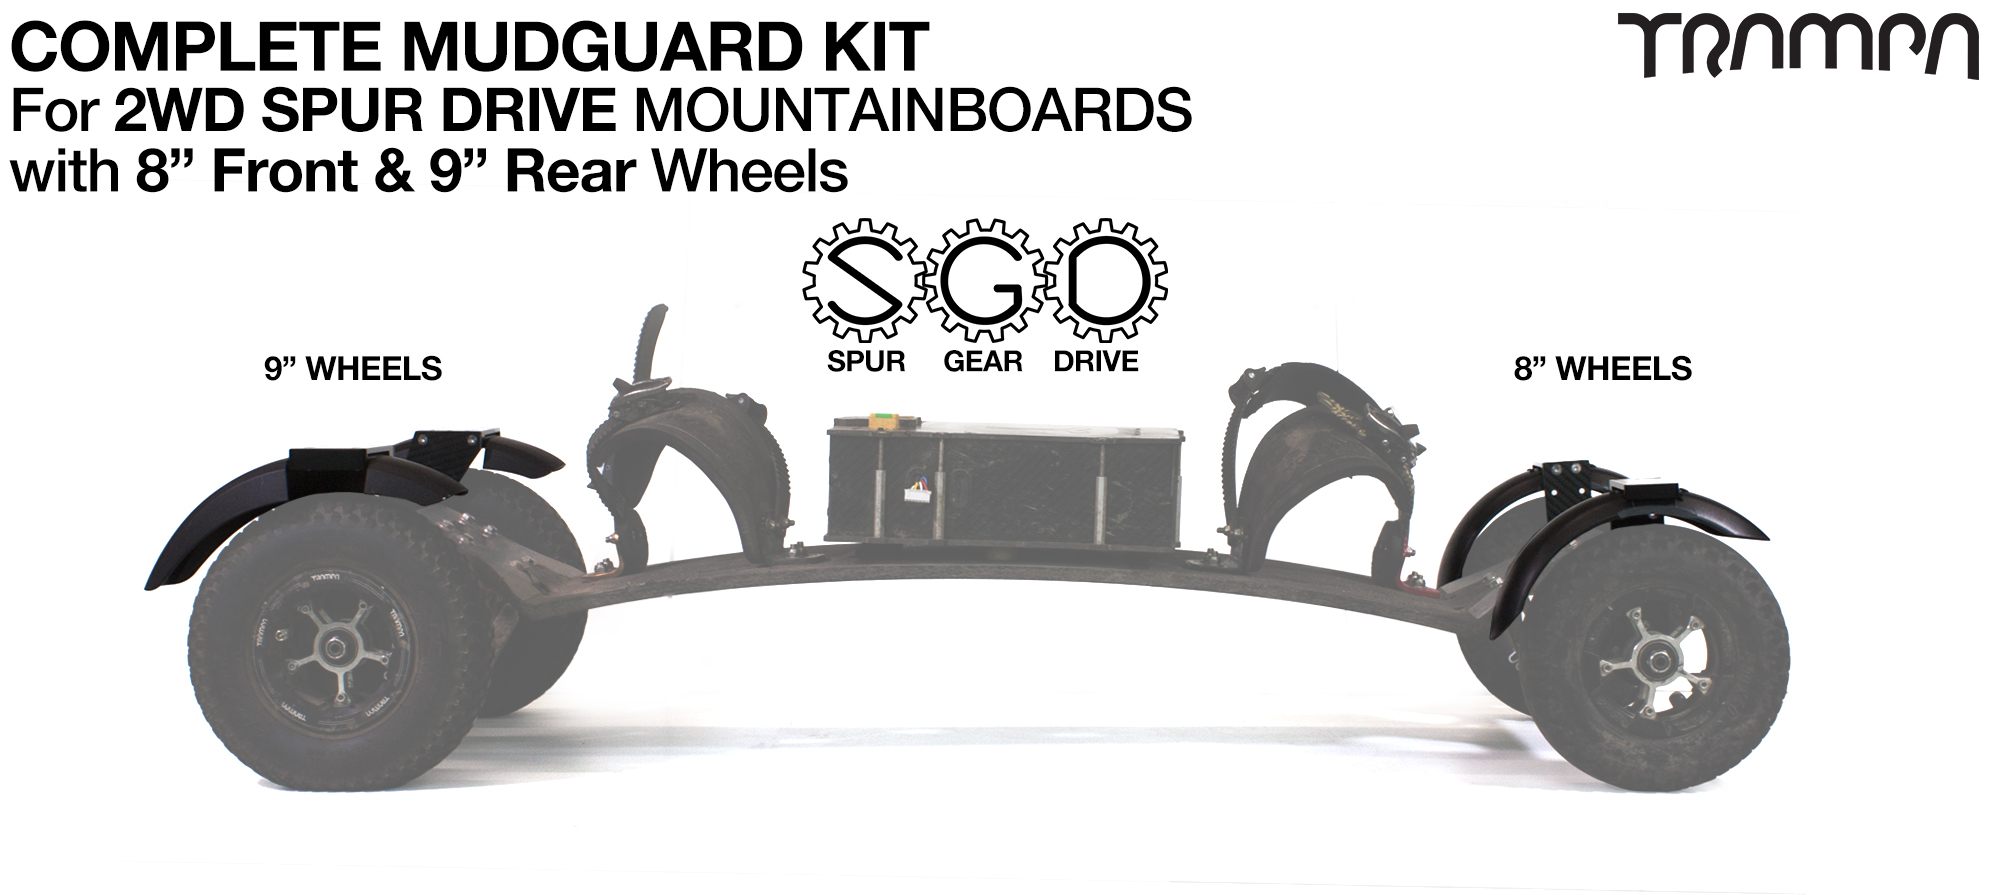 """Full Mudguard Kit for 2WD SPUR GEAR DRIVE Mountainboards - 8"""" & 9"""" Wheels"""